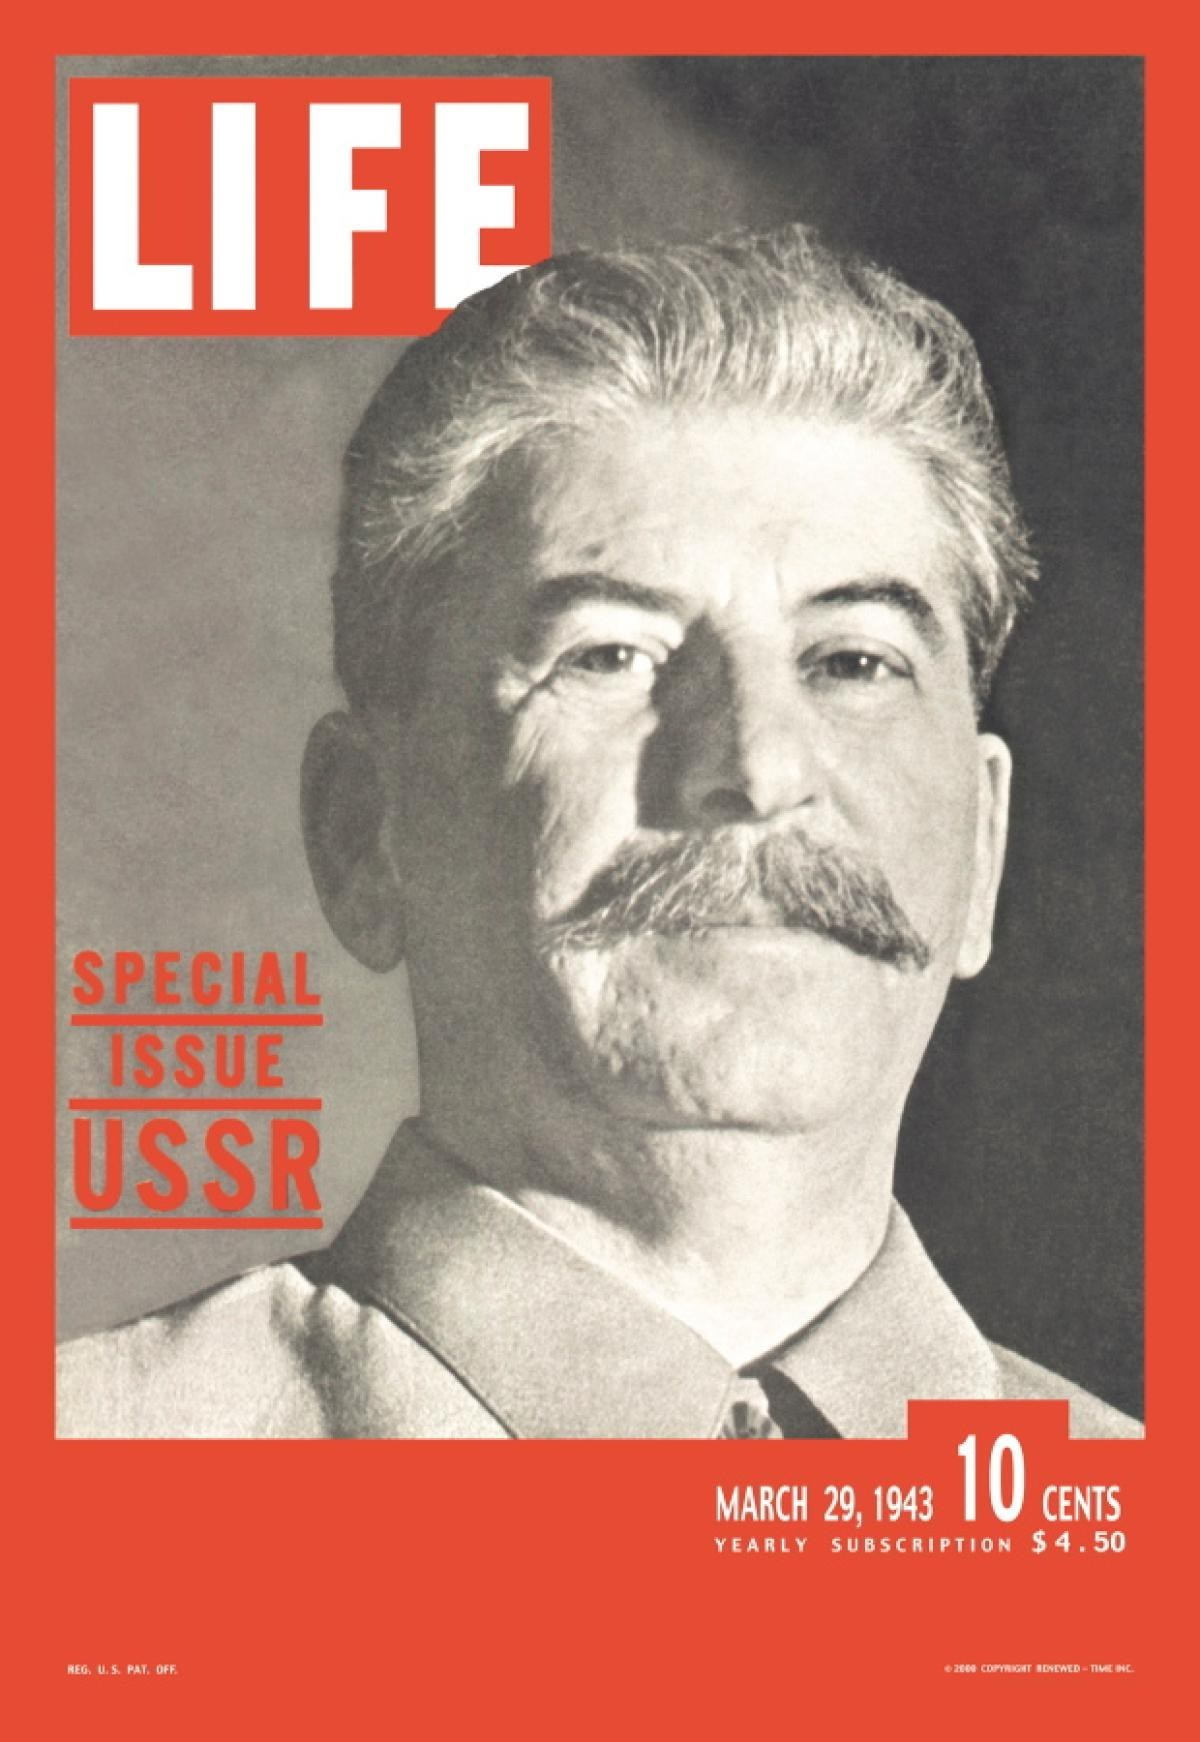 https://i0.wp.com/knownpeople.net/wp-content/uploads/j/joseph-stalin-wallpaper.jpg